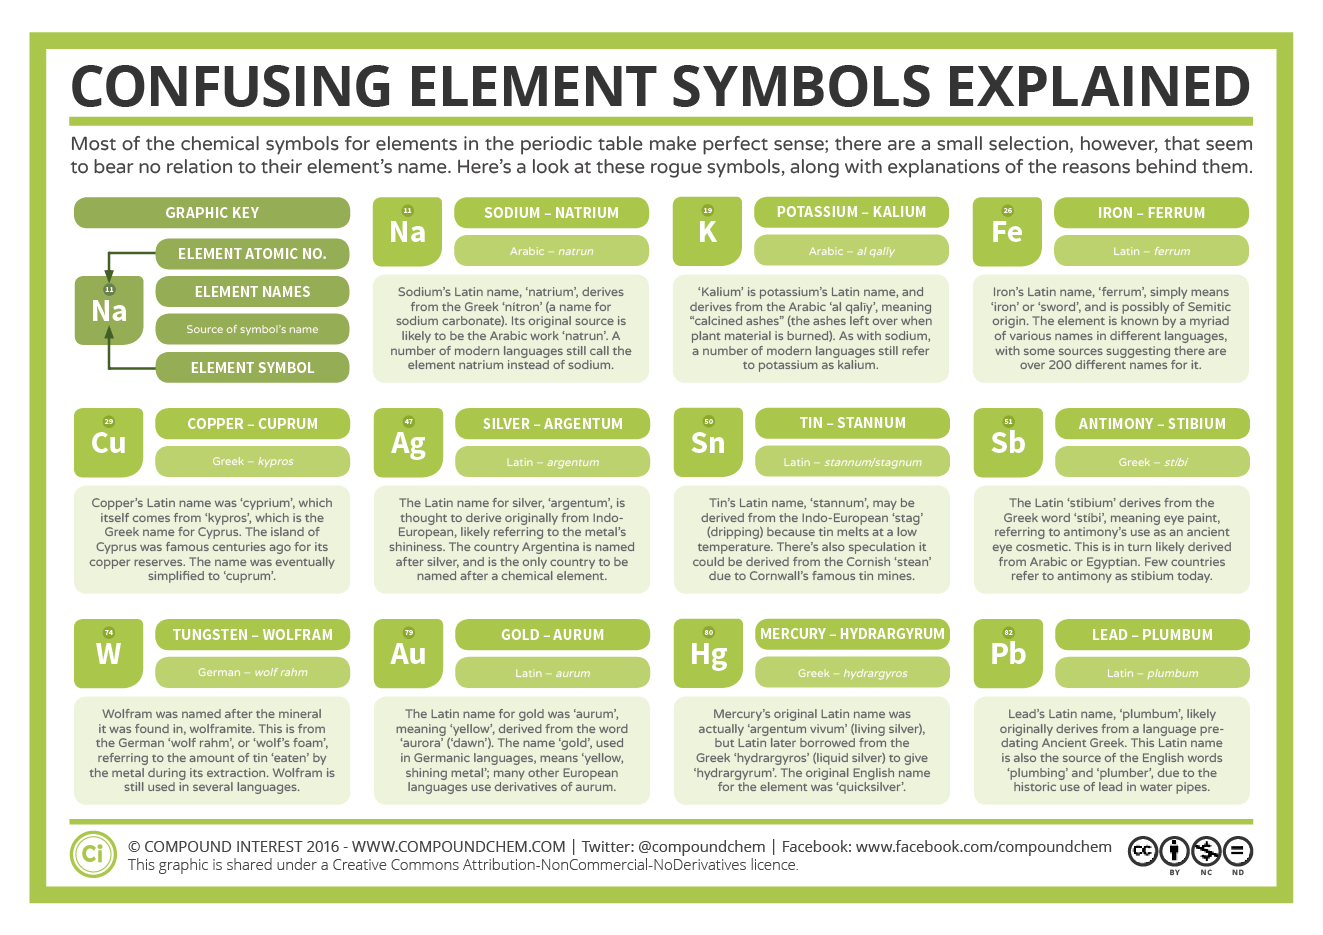 Compound Interest Element Oddities 11 Confusing Chemical Symbols